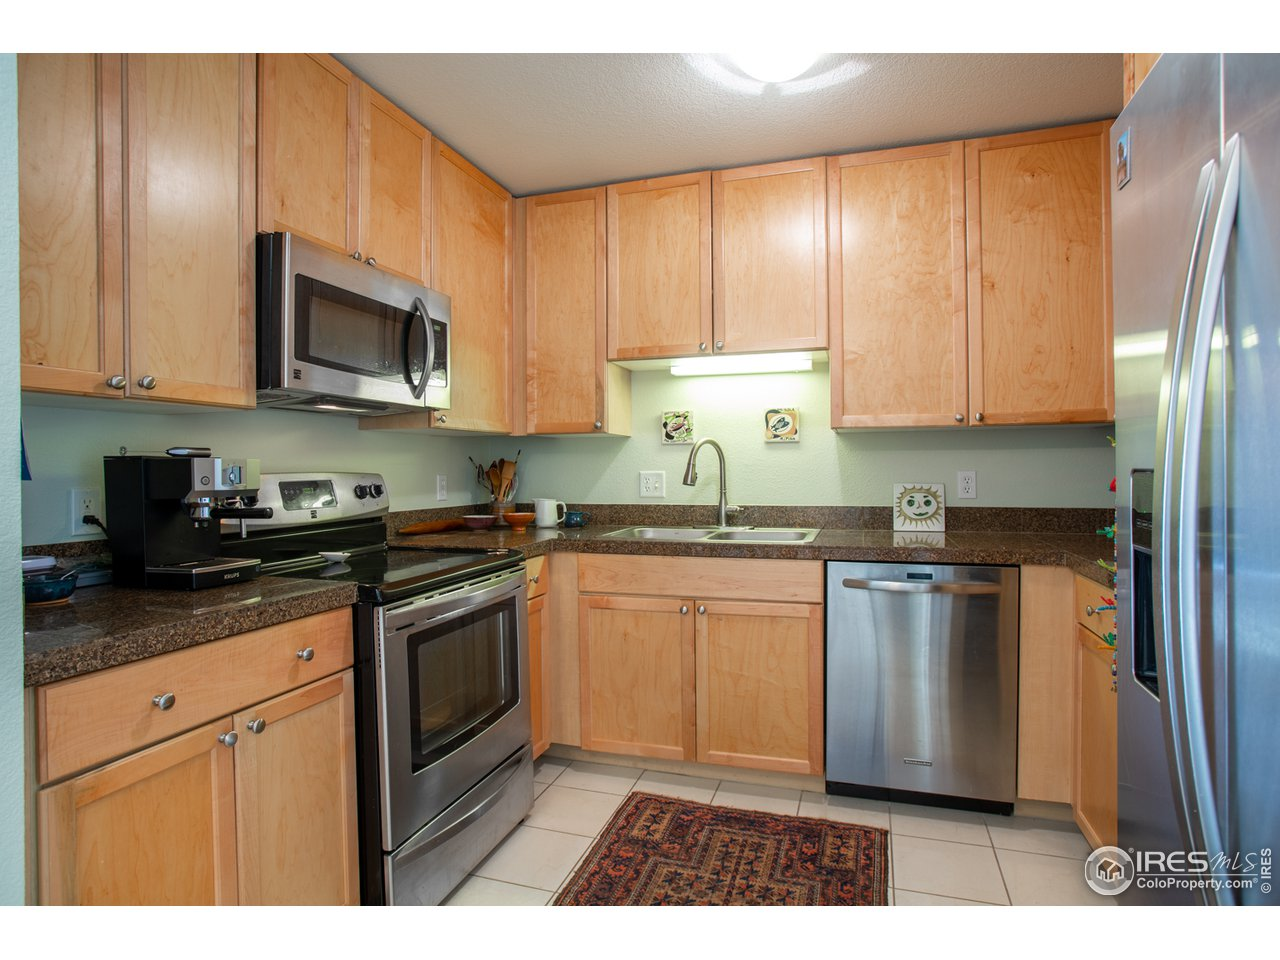 Stainless appliances, granite tile counter